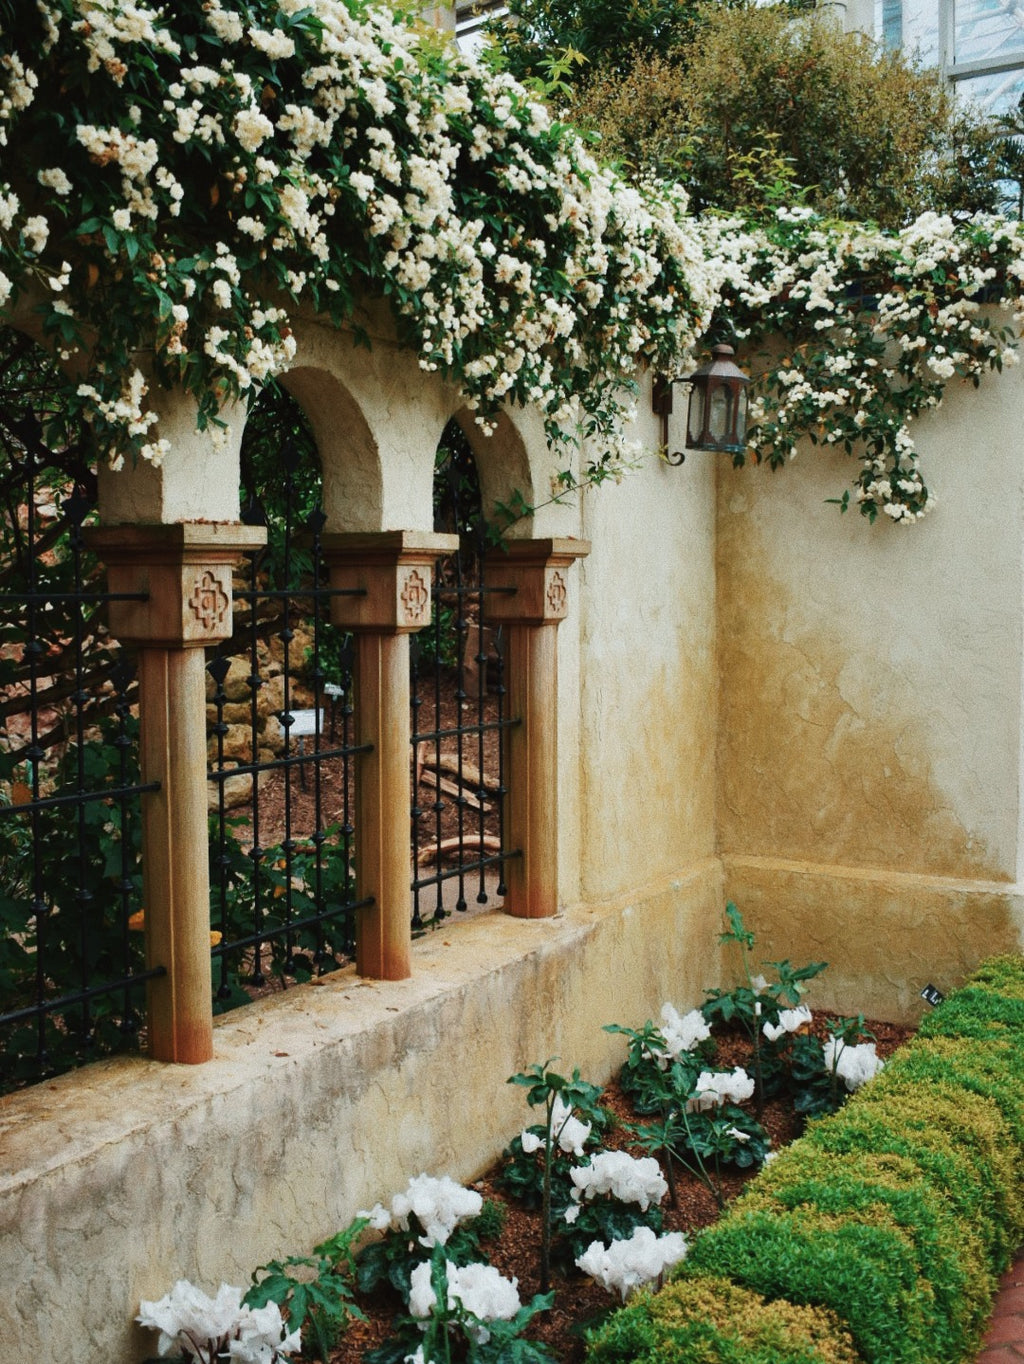 Overflowing Archways